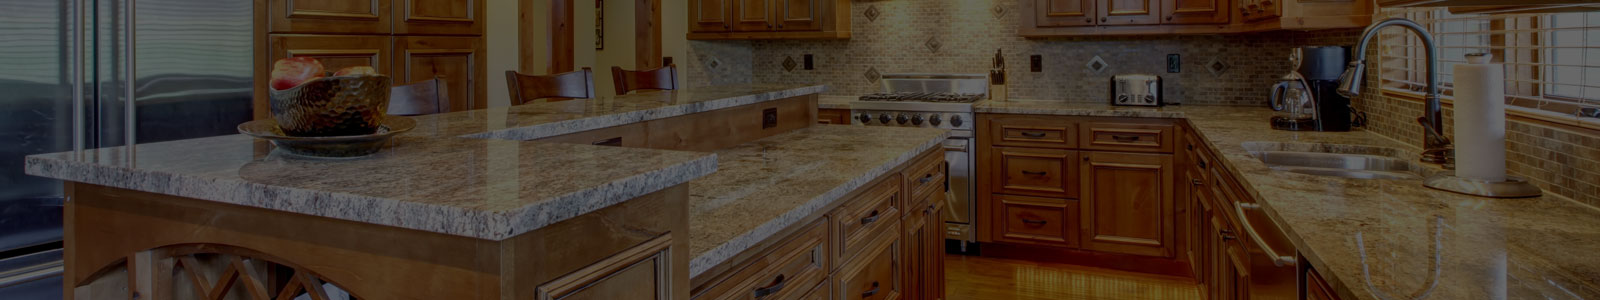 Kitchen And Bathroom Remodeling In Houston Texas ABF Remodeling Adorable Kitchen Remodeling Houston Remodelling